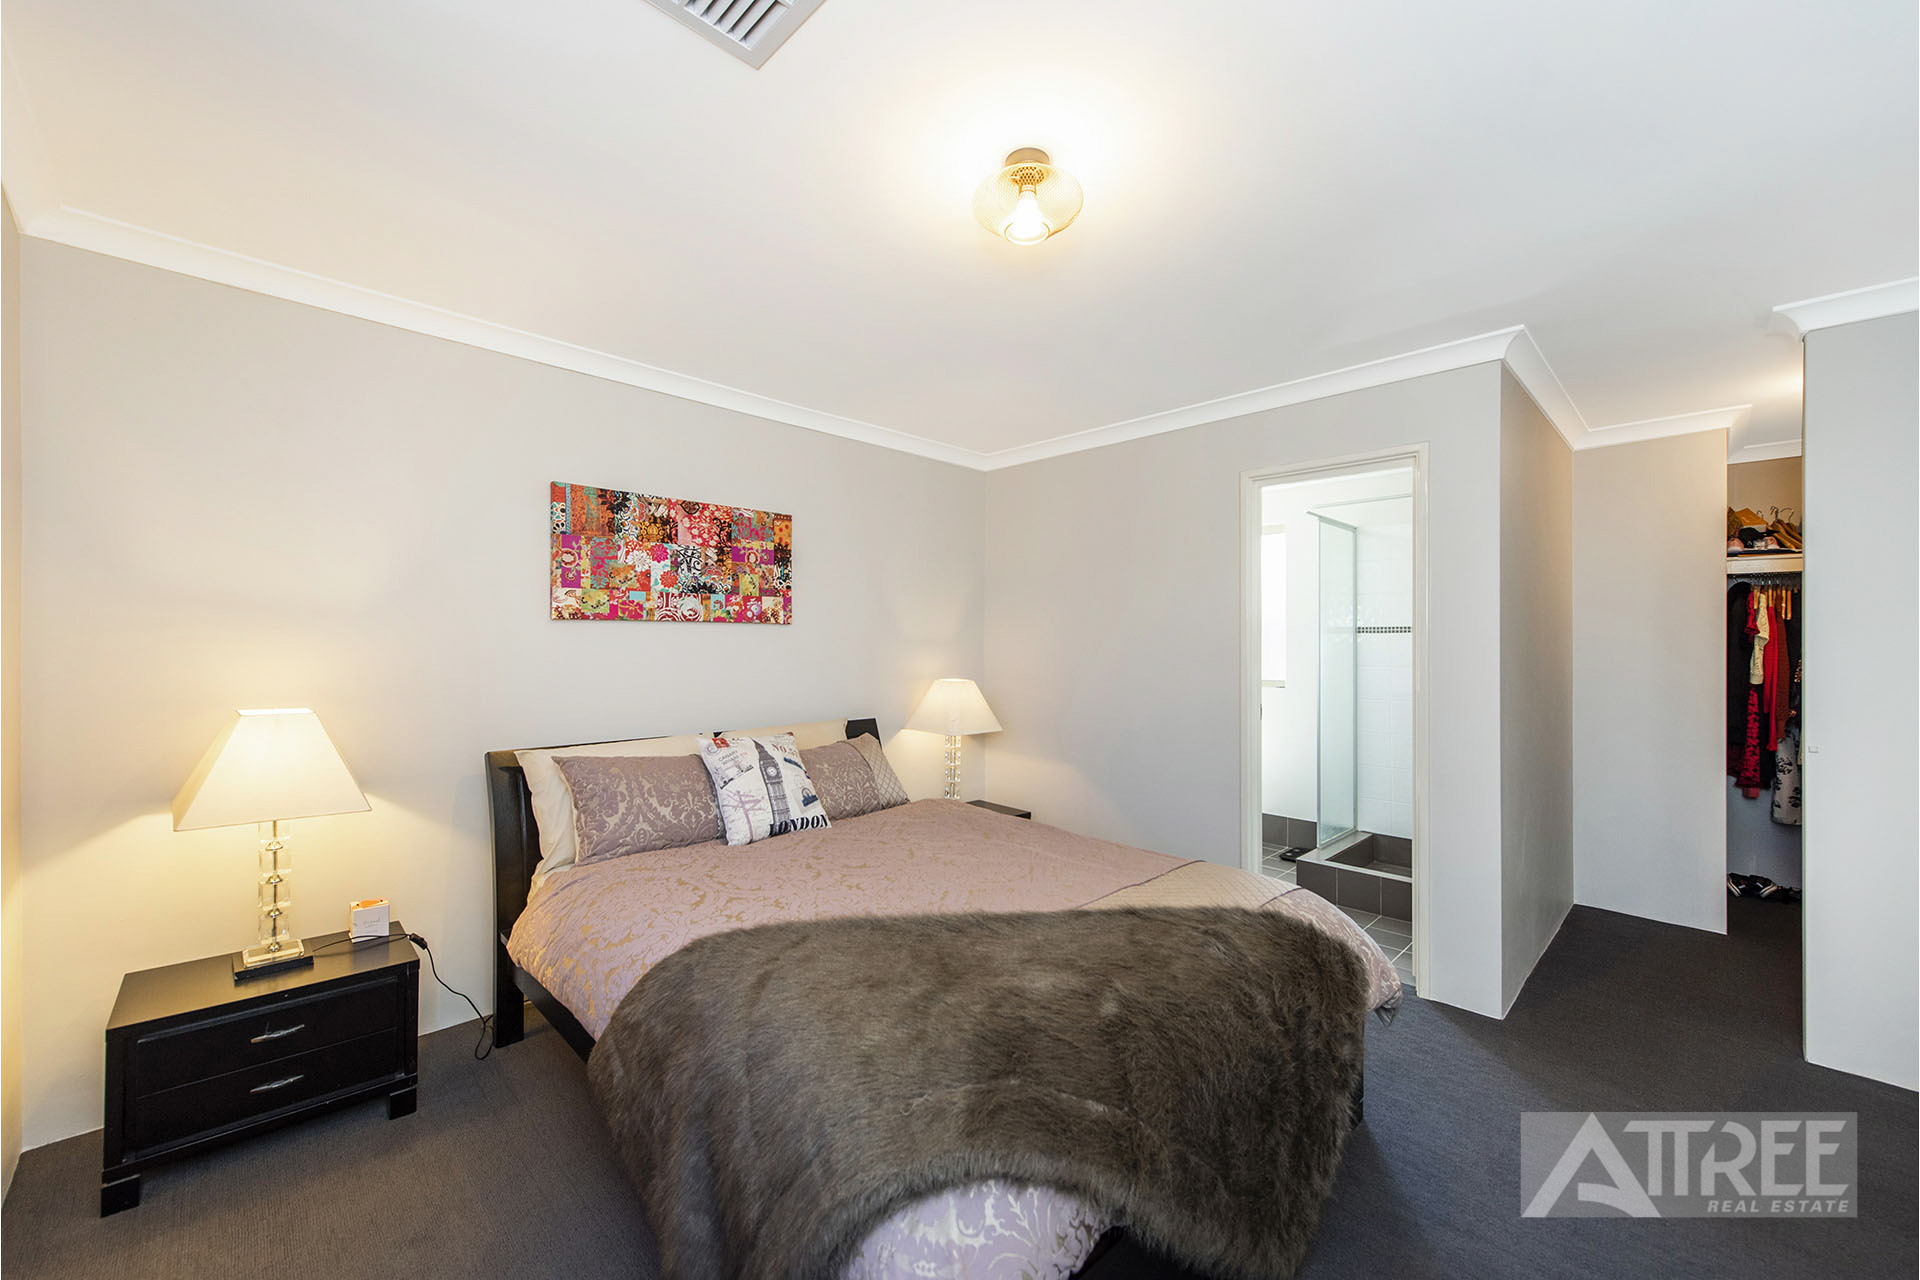 Property for sale in CANNING VALE, 6/89 Amherst Road : Attree Real Estate